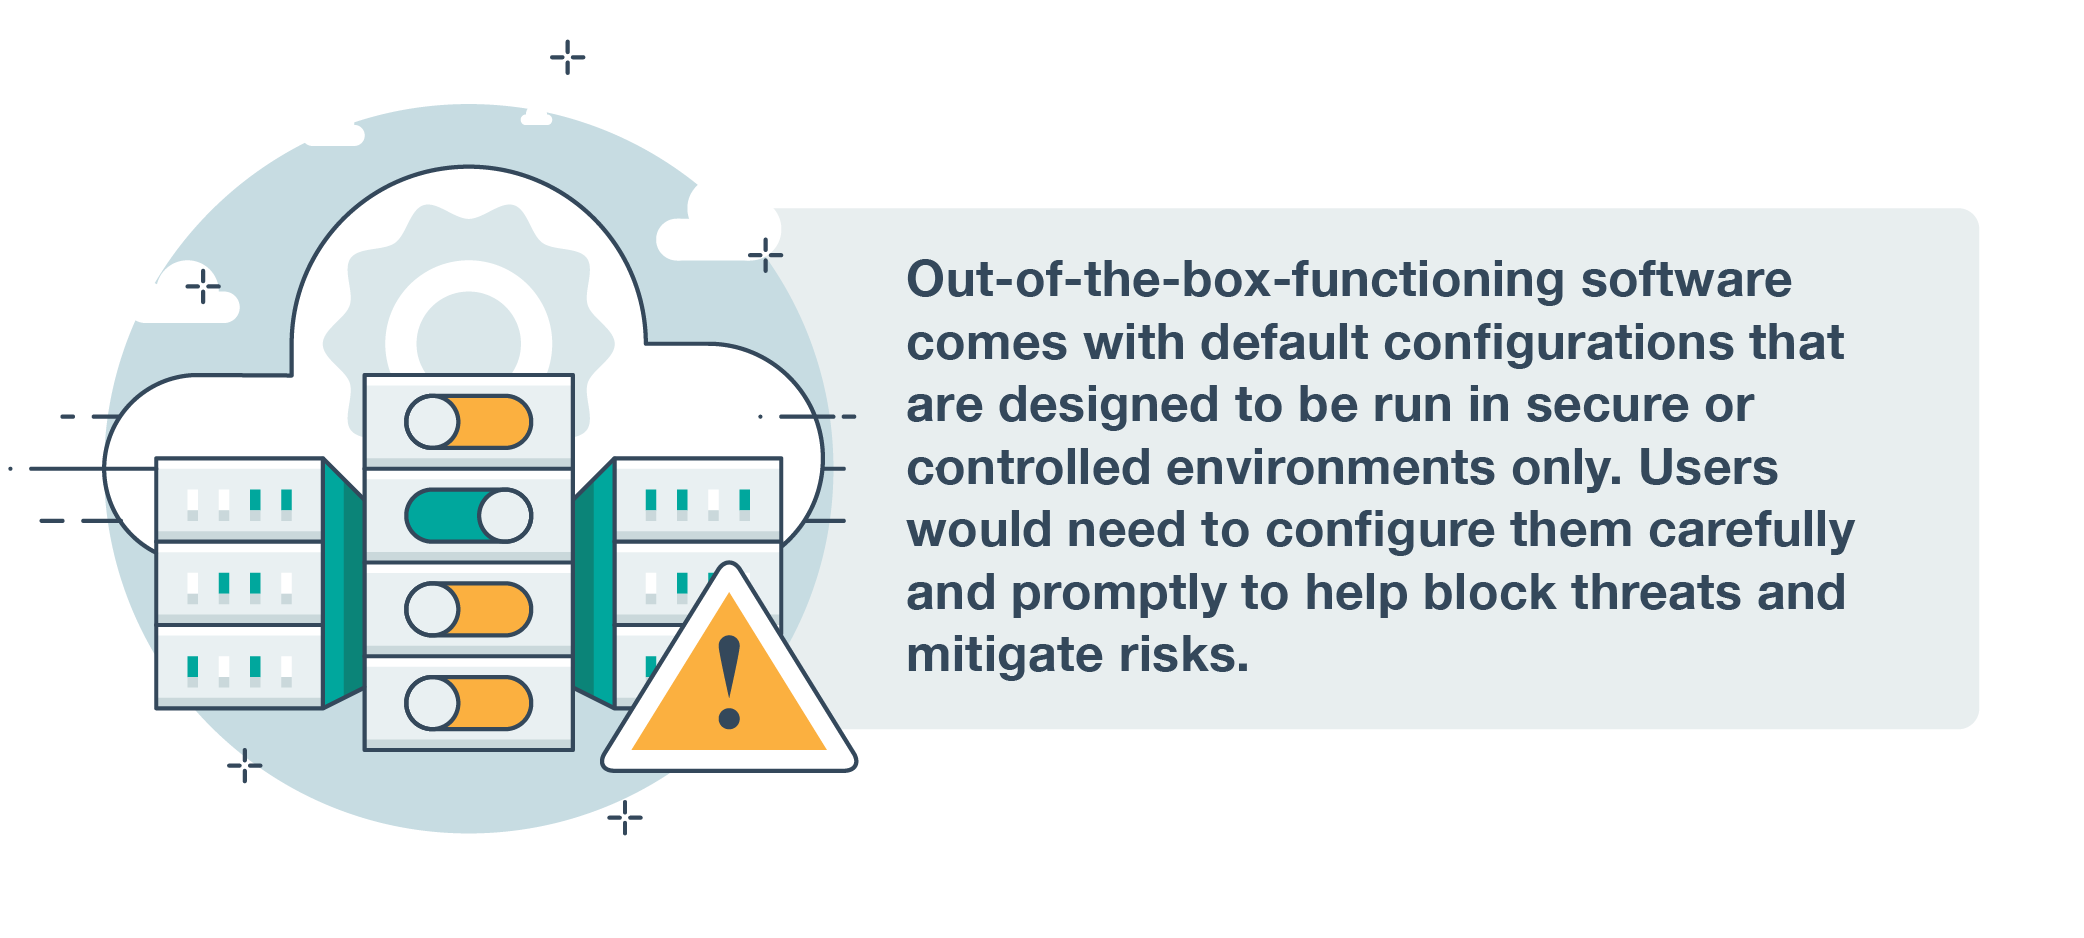 Configure out-of-the-box software carefully and promptly to block threats and mitigate risks